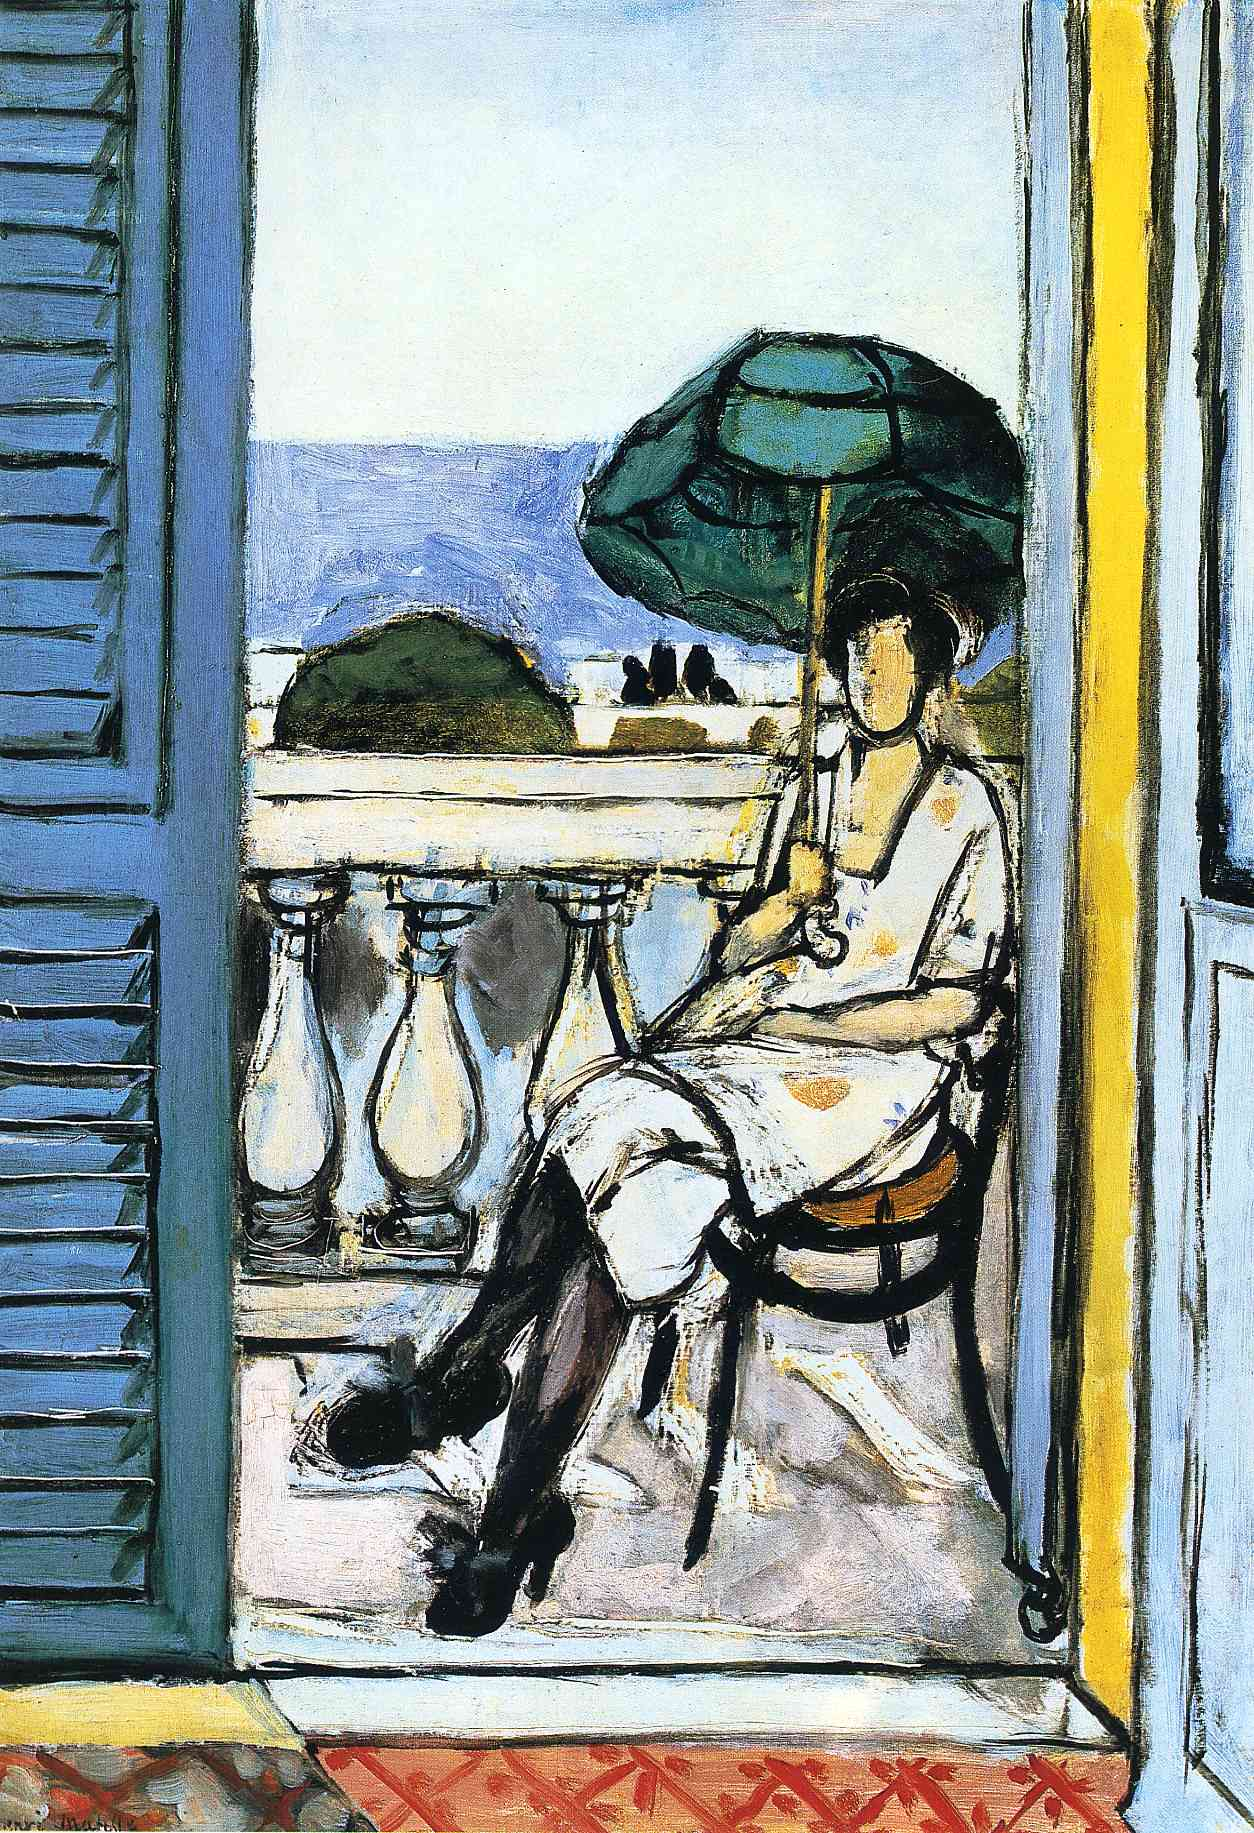 Henri Matisse - Woman with a Green Parasol on a Balcony 1919